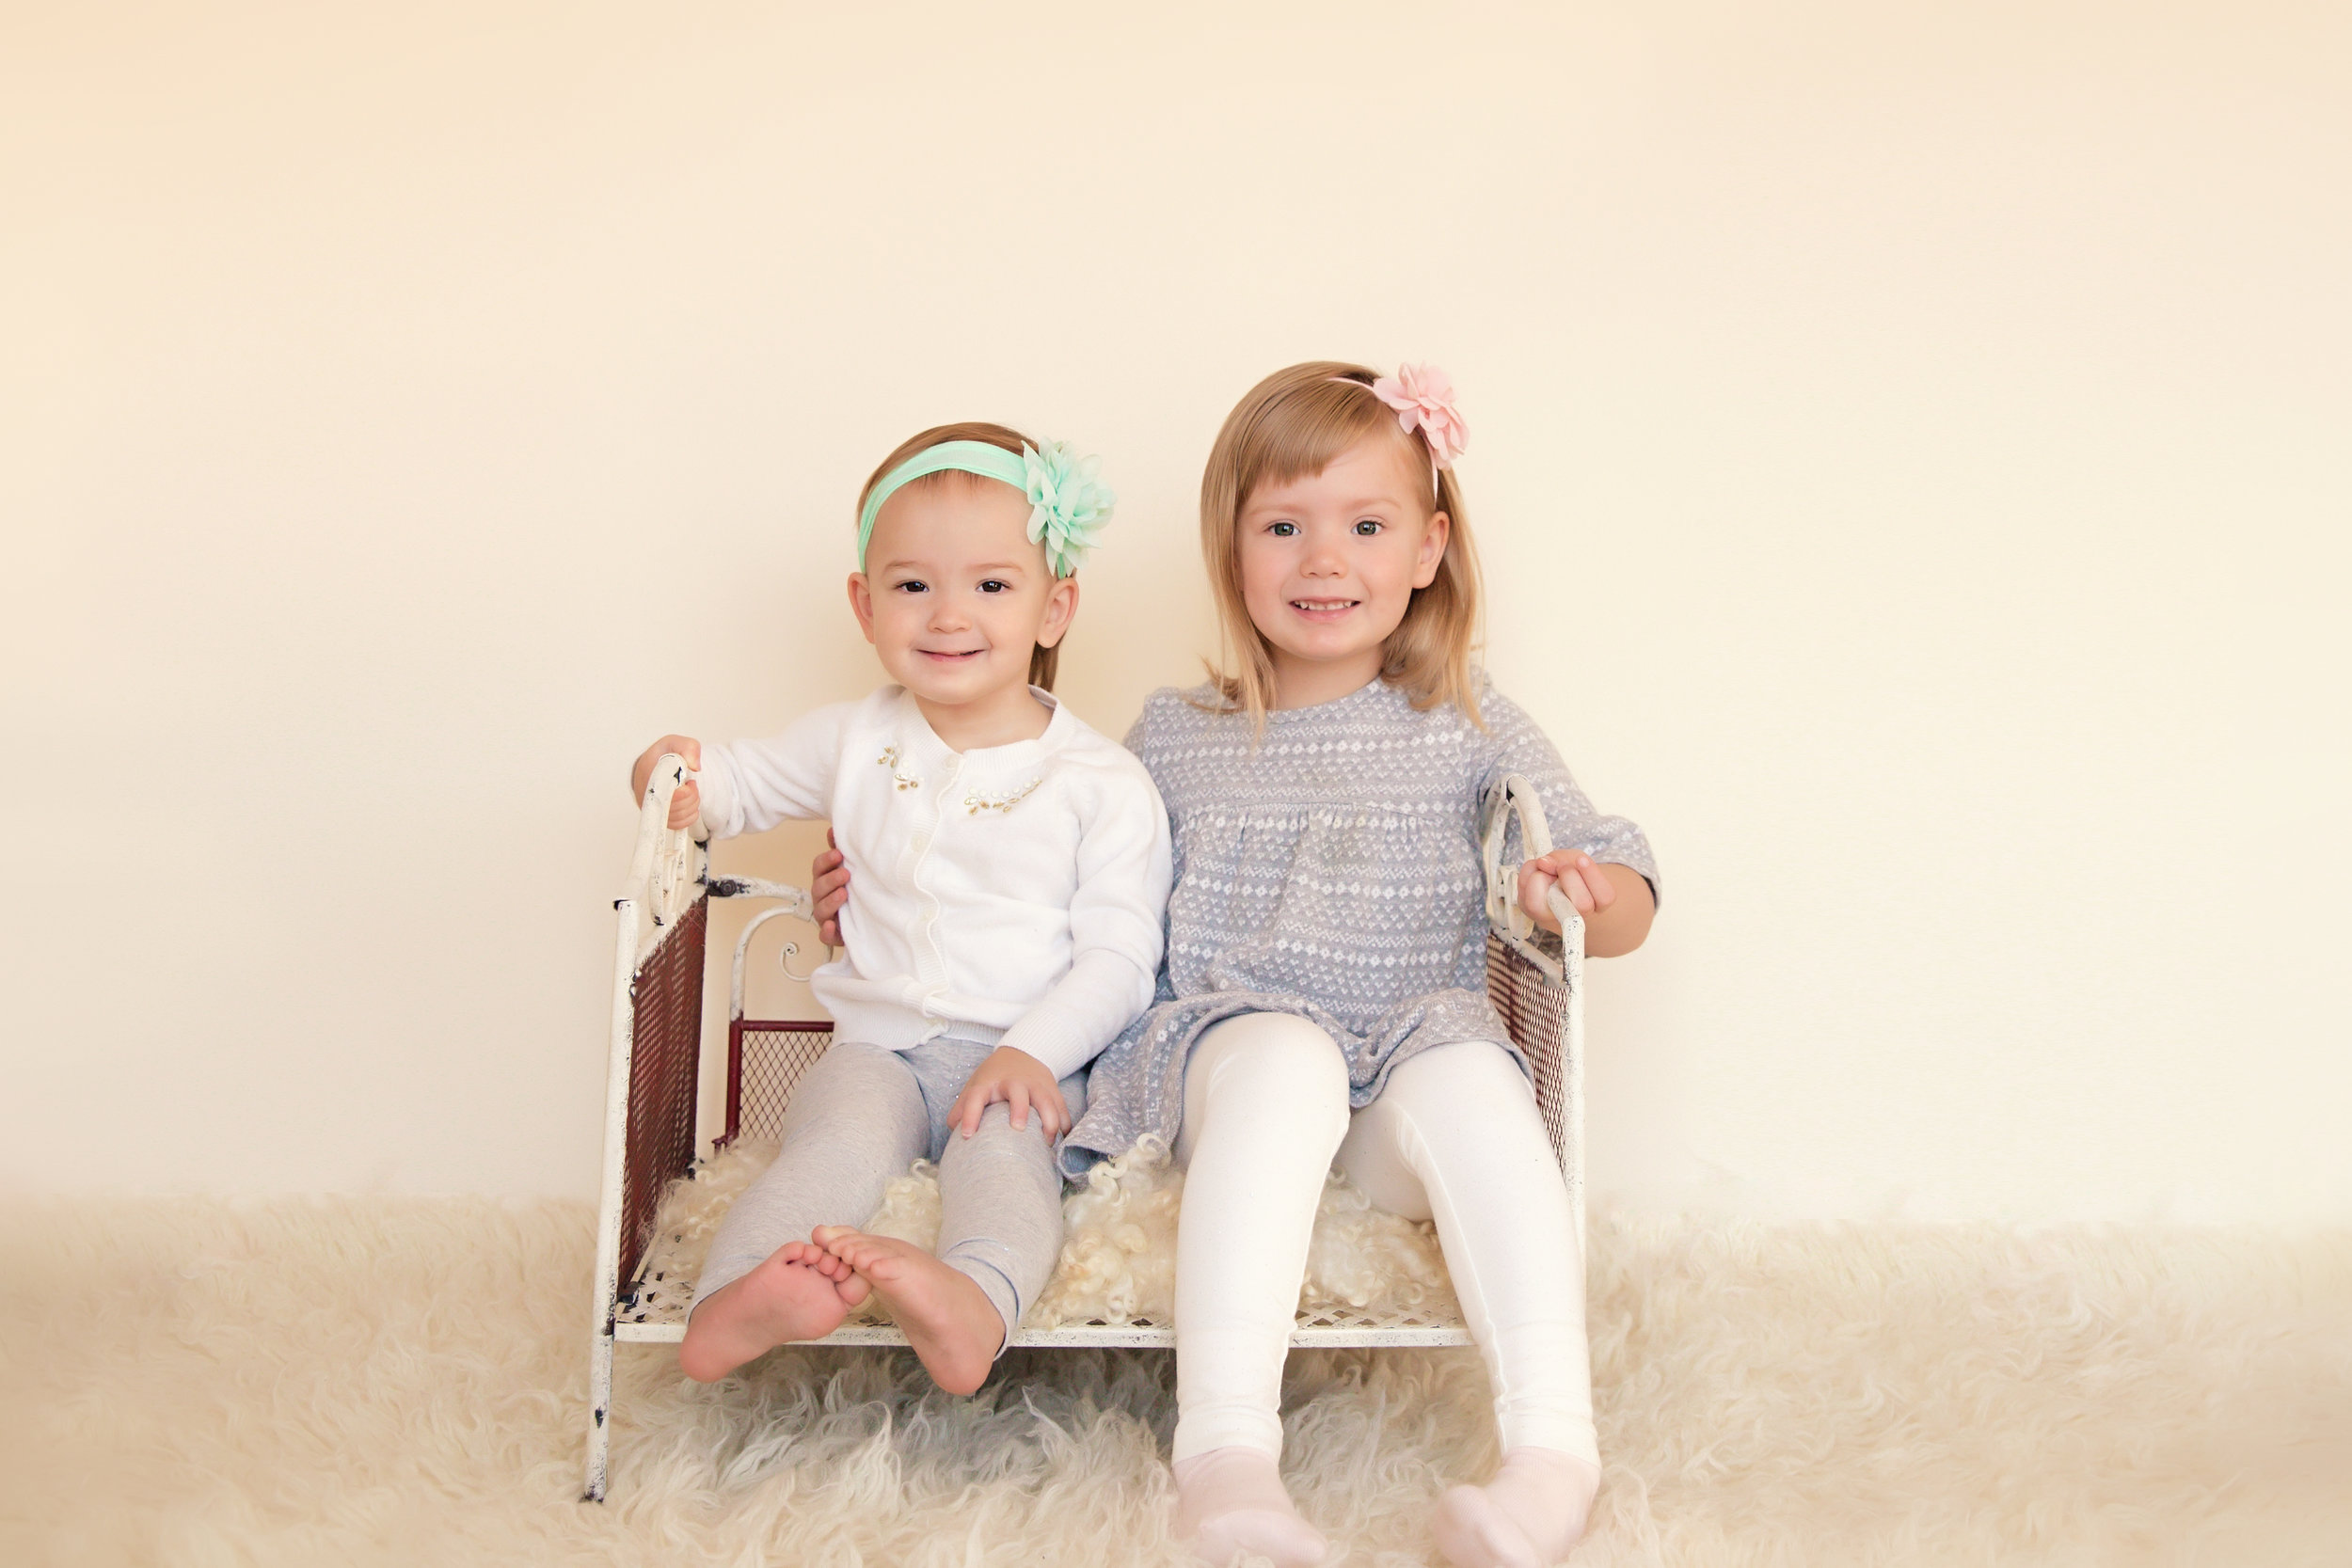 Sisters sitting on a bed and smiling. Calgary children photographer. Milashka Photography